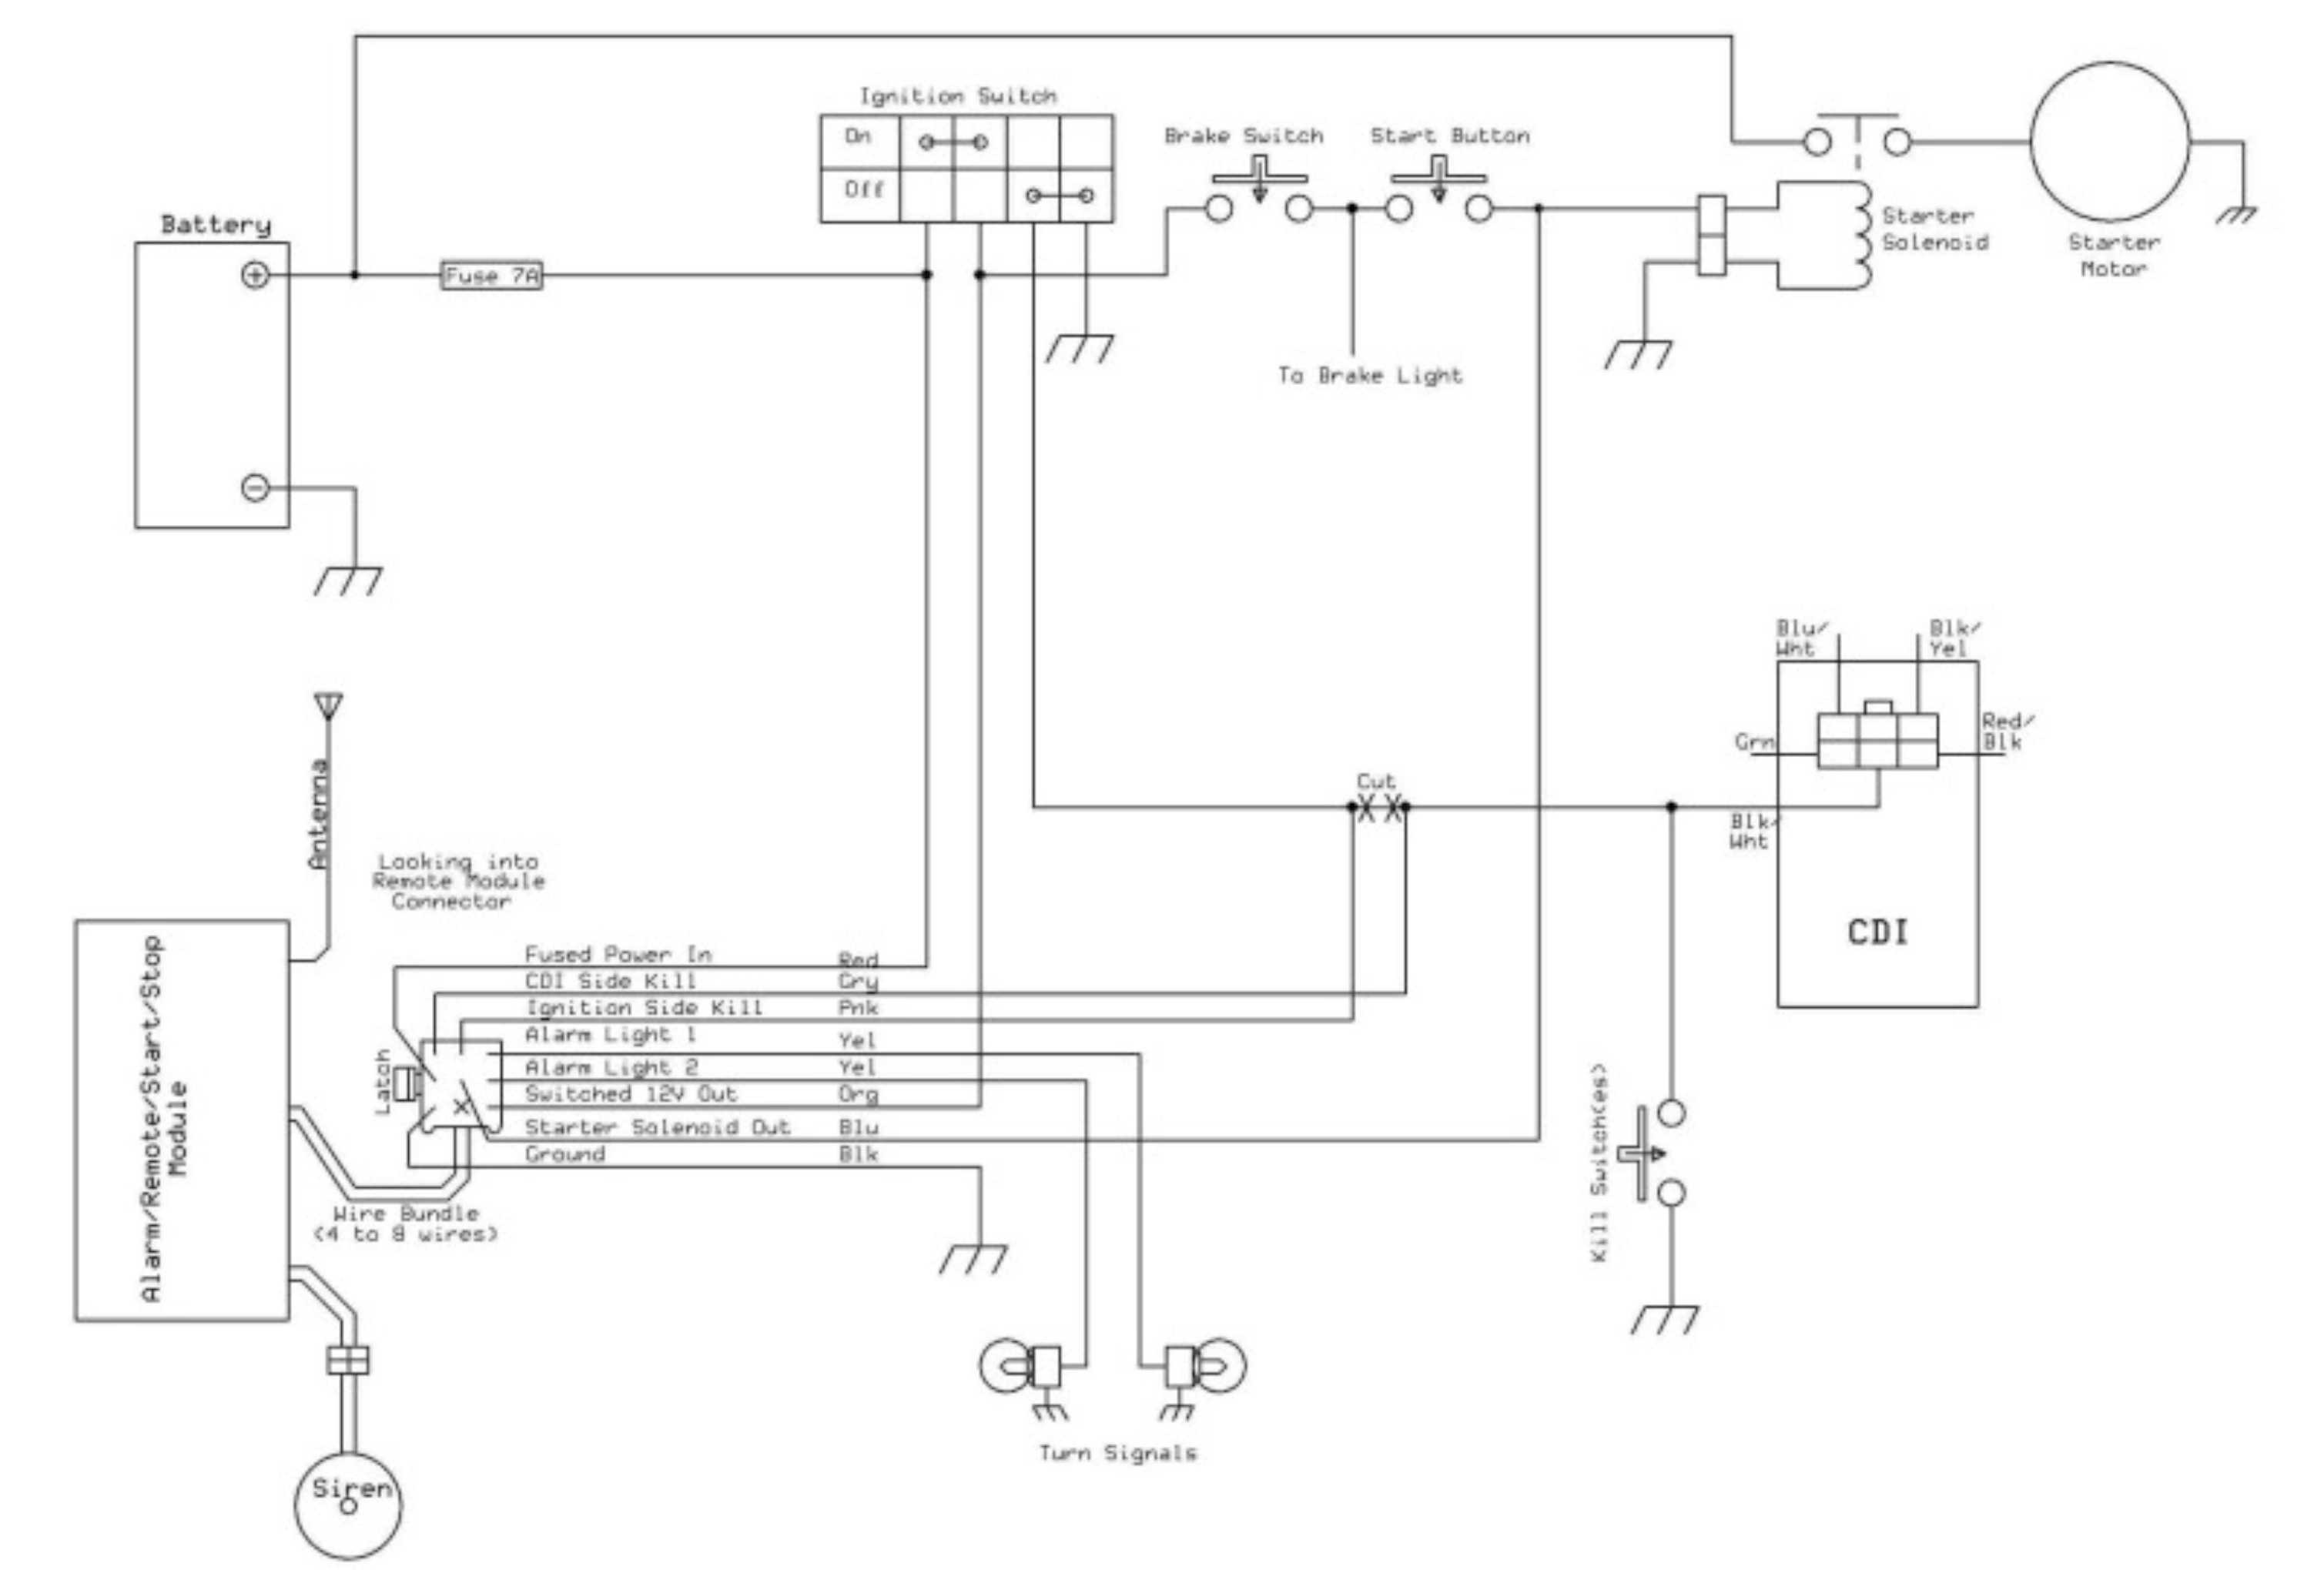 Chinese Atv Wiring Diagram 500 | Online Wiring Diagram on 4 wheeler switch, 4 wheeler headlights, 4 wheeler exhaust, 4 wheeler tools, 4 wheeler honda, 4 wheeler carburetor, 4 wheeler motor, 4 wheeler steering diagram, four wheeler diagram, 4 wheeler timing, 4 wheeler controls, 4 wheeler automatic transmission, 4 wheeler parts, 4 wheeler spark plug, 4 wheeler engine swap, 4 wheeler dimensions, 4 wheeler speedometer, 4 wheeler alternator, 4 wheeler fuel pump, 4 wheeler tires,